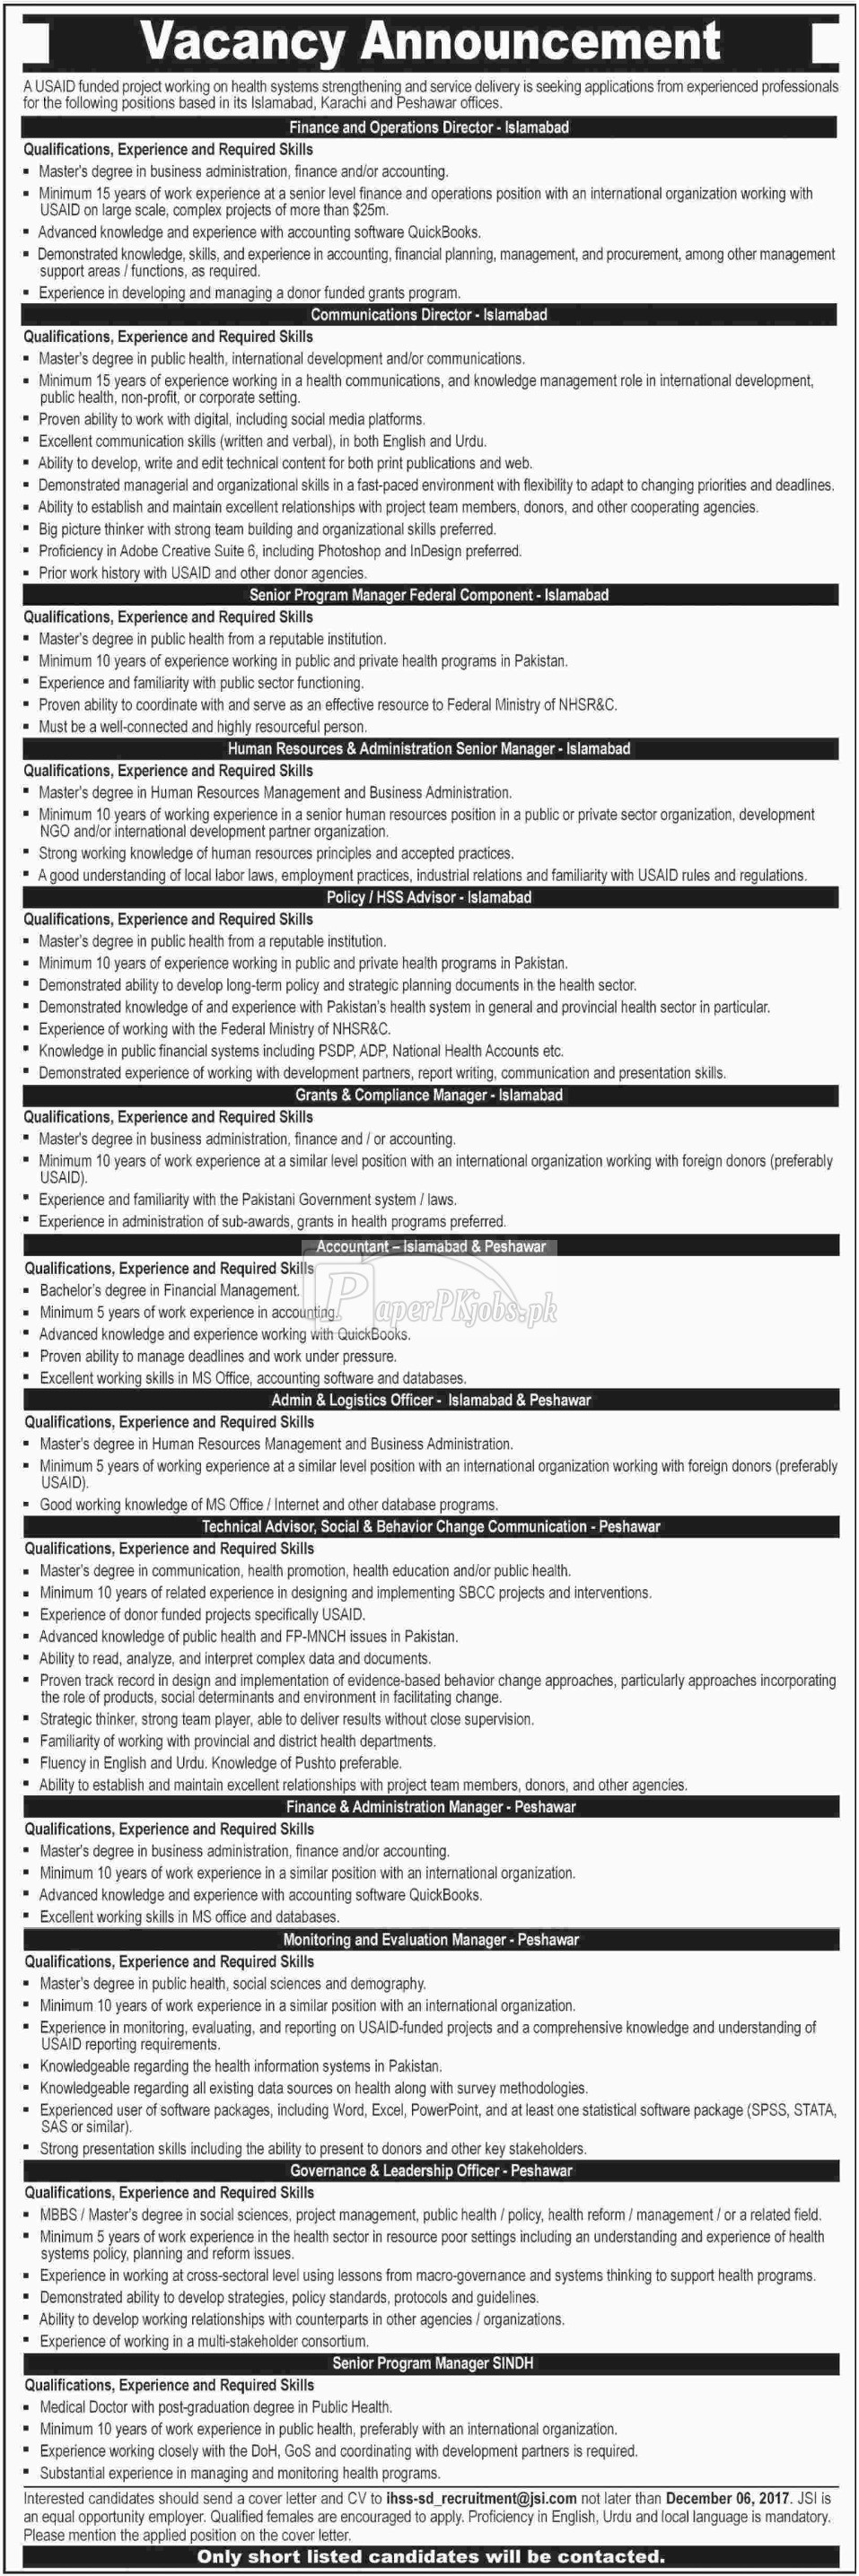 USAID Funded Project Jobs 2017